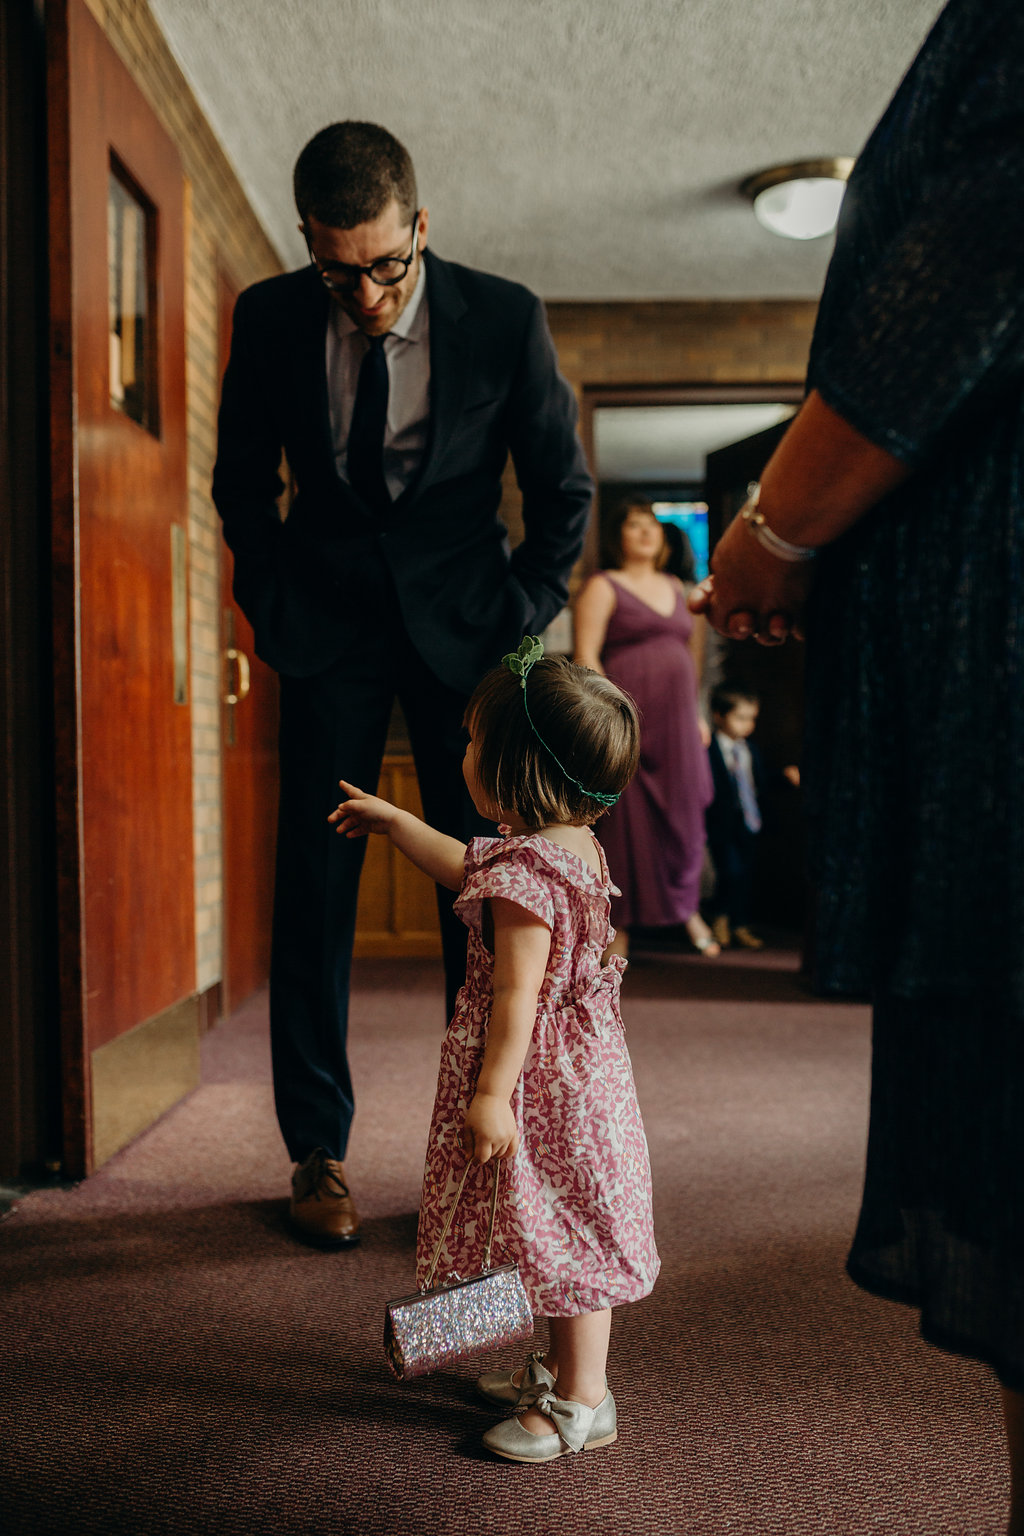 JOYFUL OHIO HOMETOWN WEDDING | JOSH + MOLLY 70